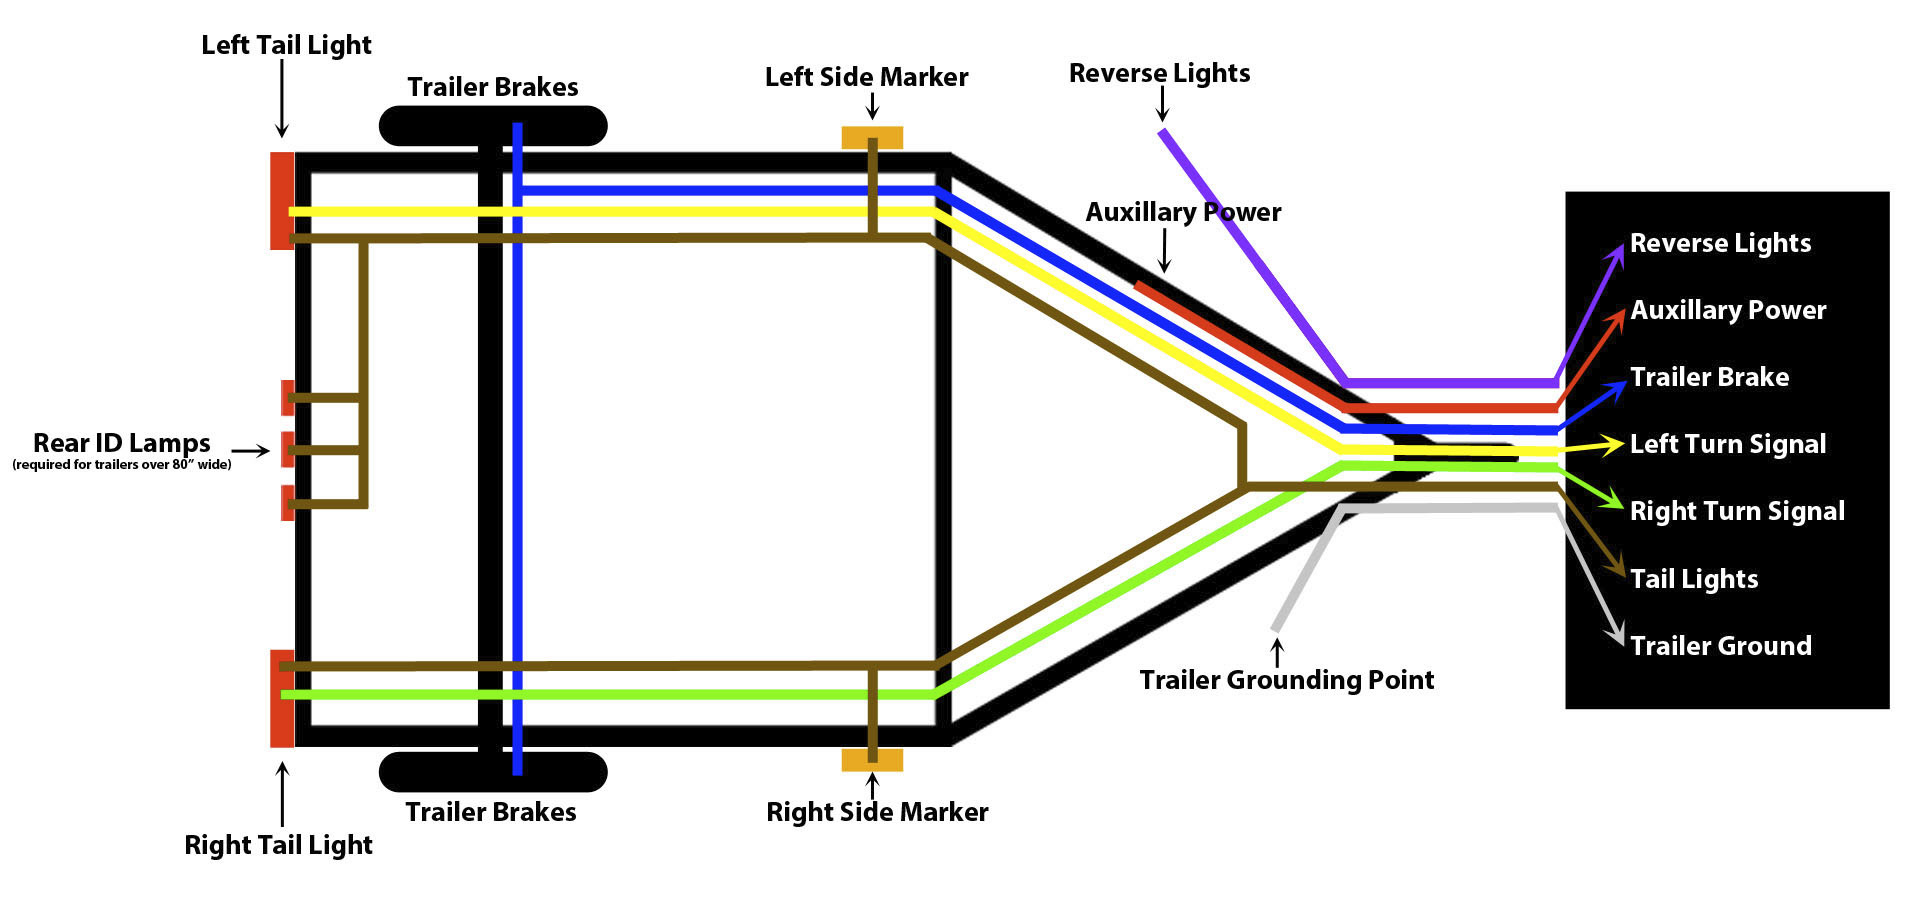 How To Wire Trailer Lights - Trailer Wiring Guide & Videos - Wiring Diagram For Trailer Lights 4 Way